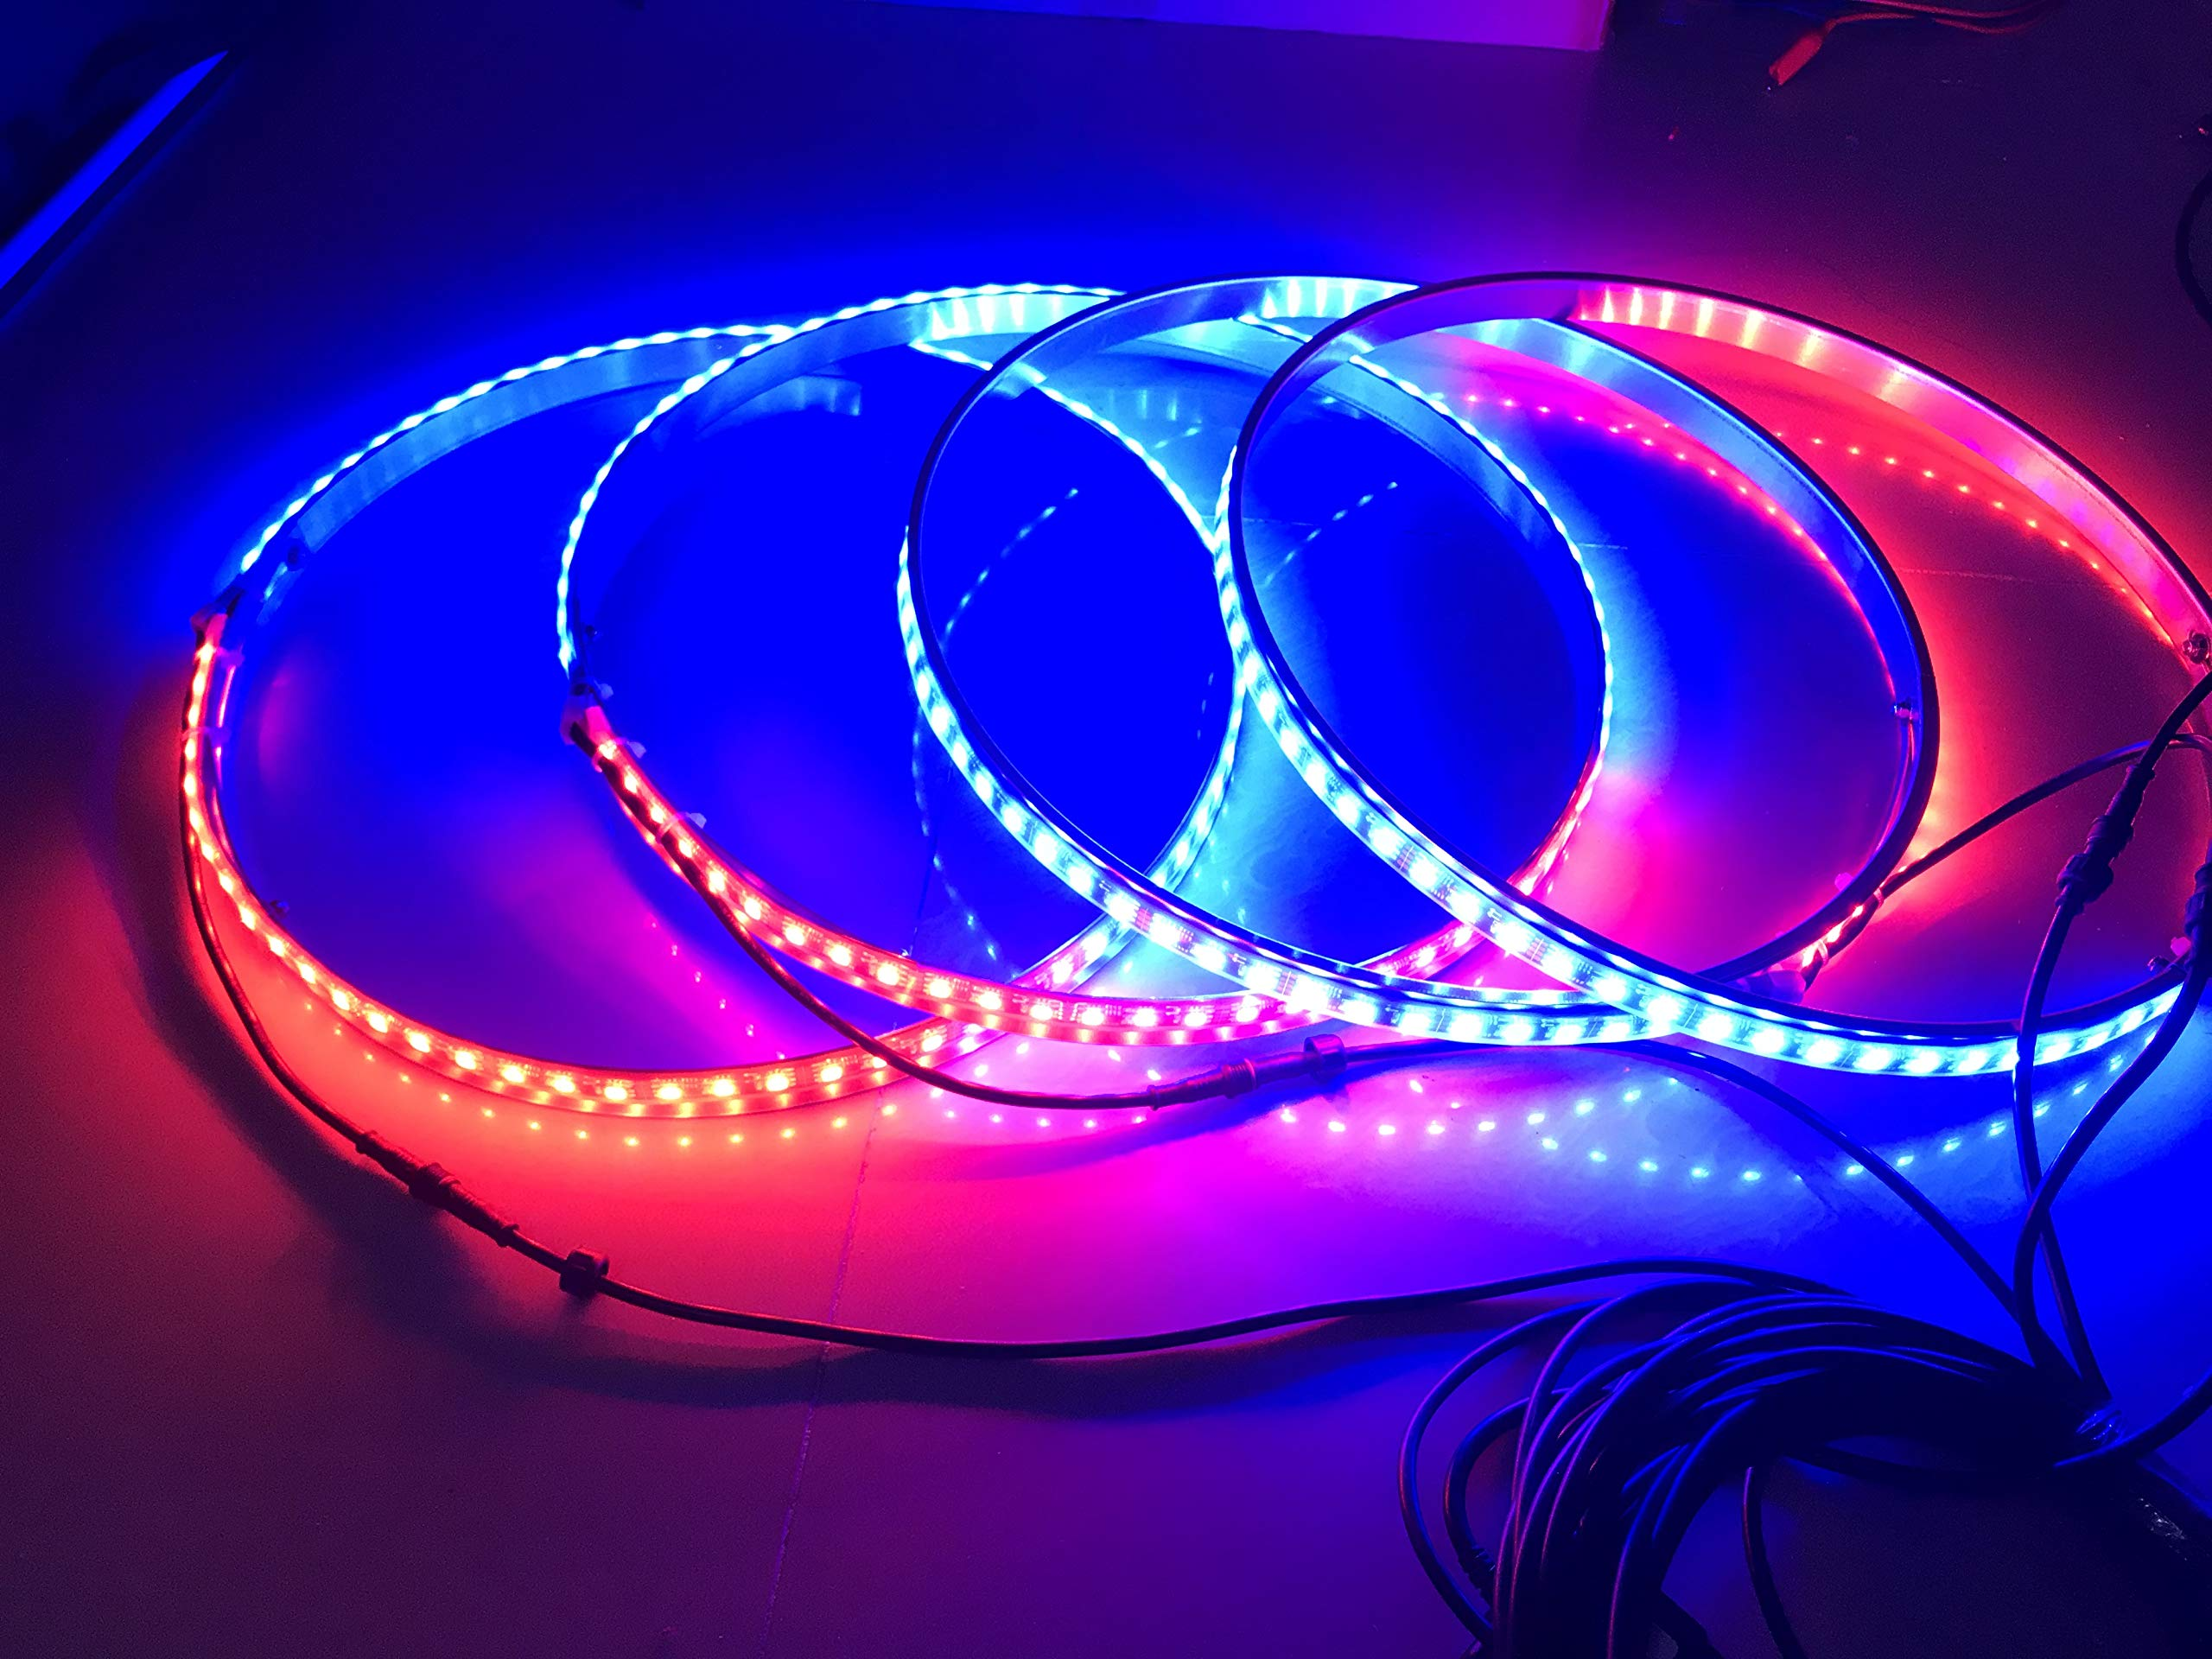 Sando Tech Dream Chasing Colors Flow 15.5'' LED Wheel Ring Lights Rim Lights Tire Lights Blue-Tooth App Controlled 4 Lights